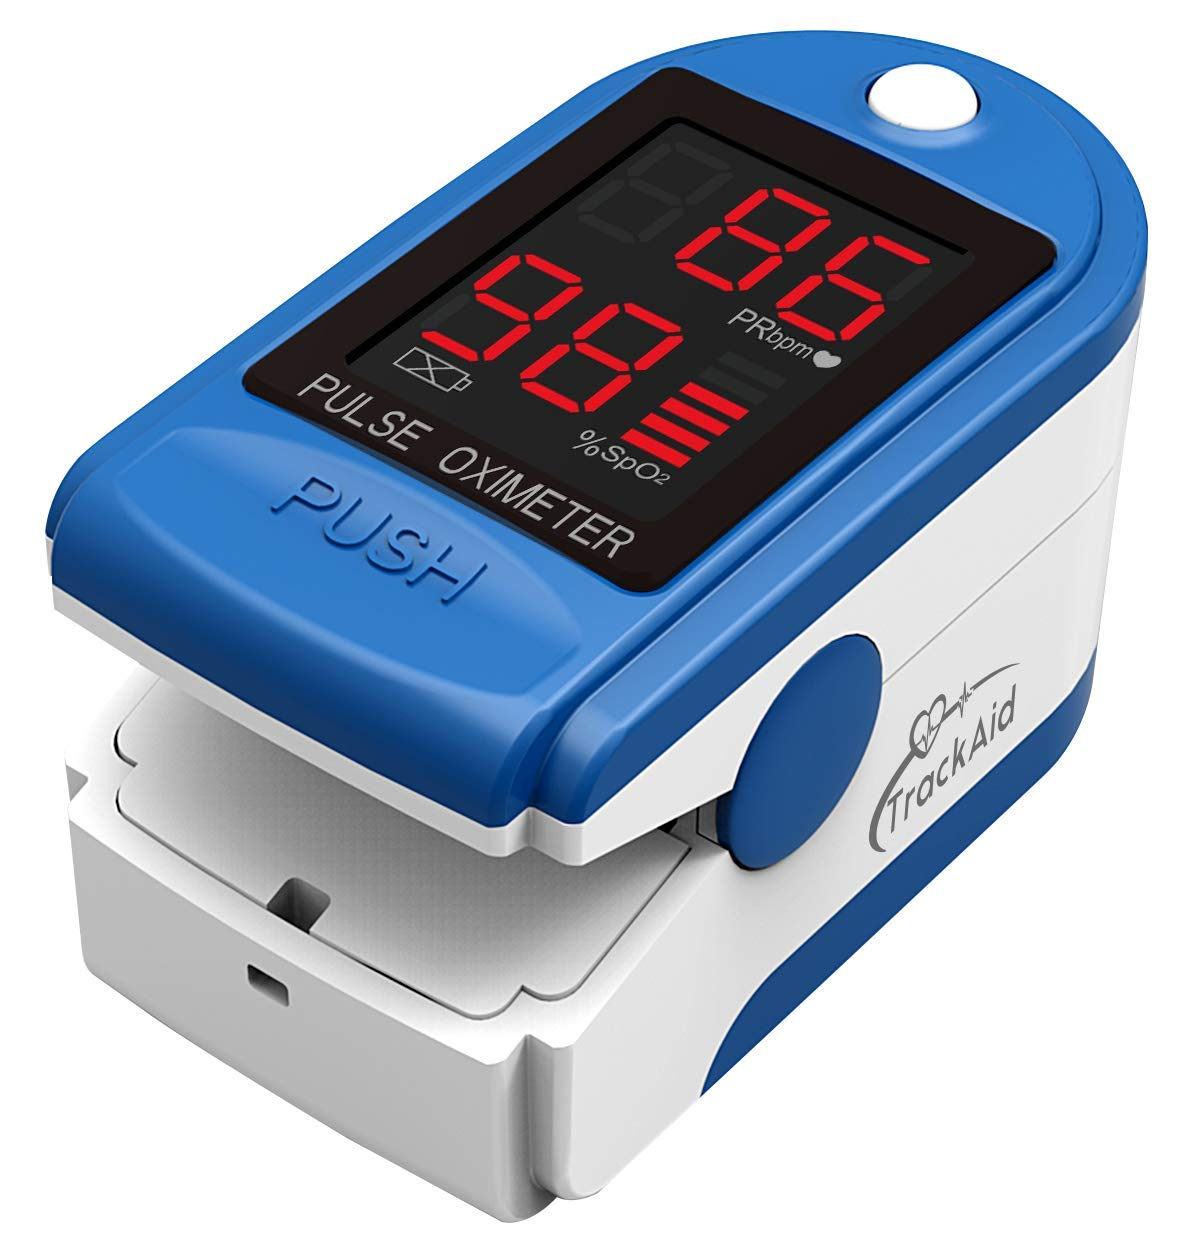 TrackAid Pulse Oximeter Portable Finger Oxygen Saturation and Pulse Rate Monitor (Blue)